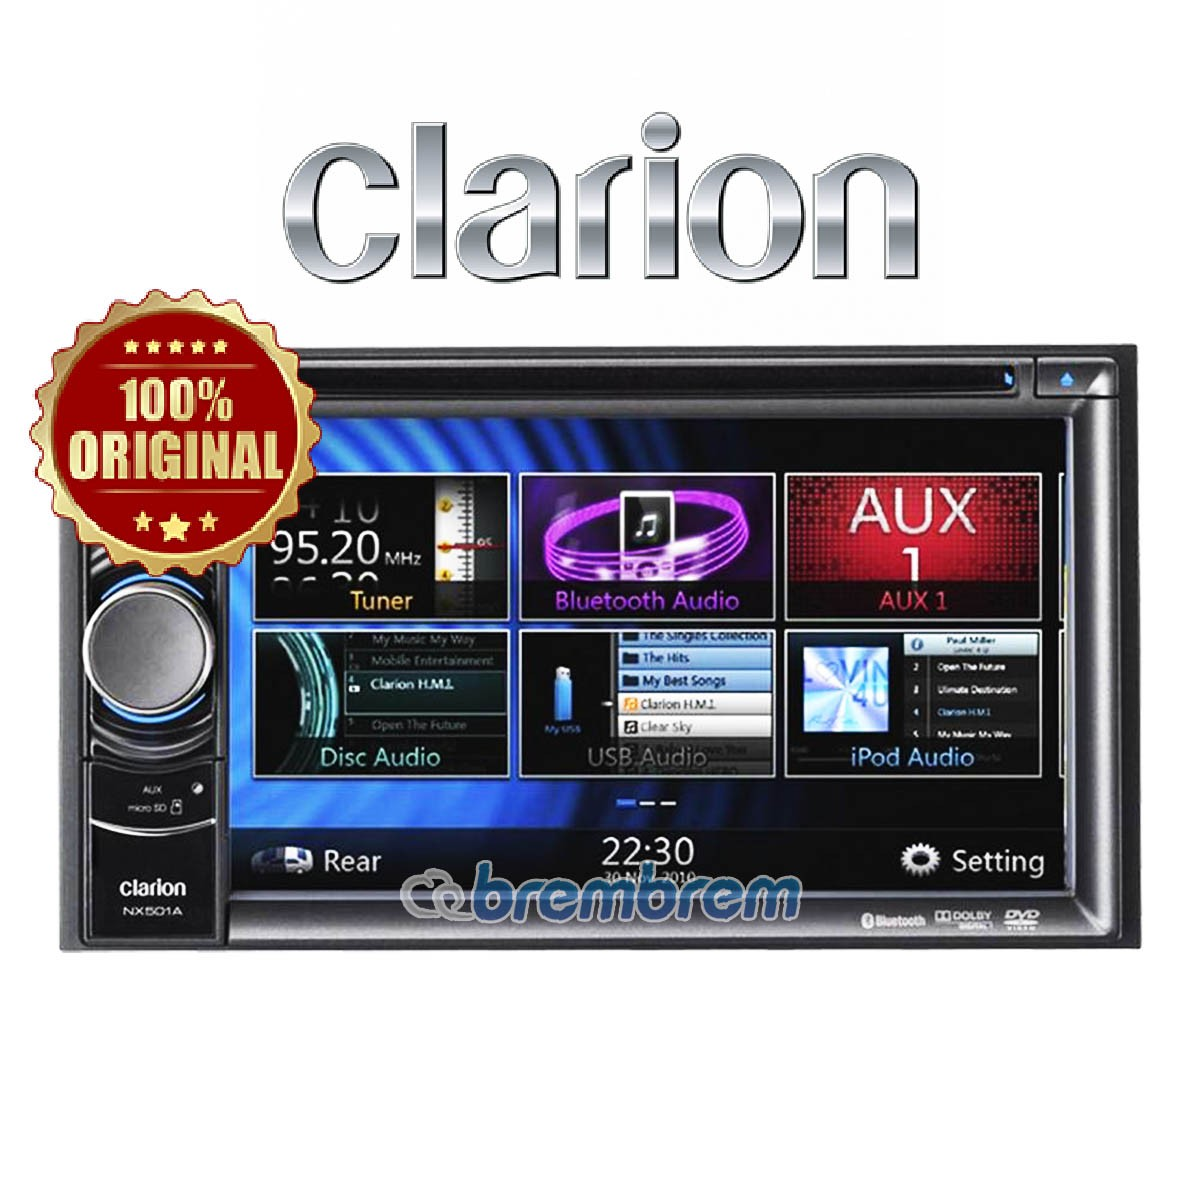 CLARION NX 501 A (GPS NAVIGASI) - HEAD UNIT DOUBLE DIN